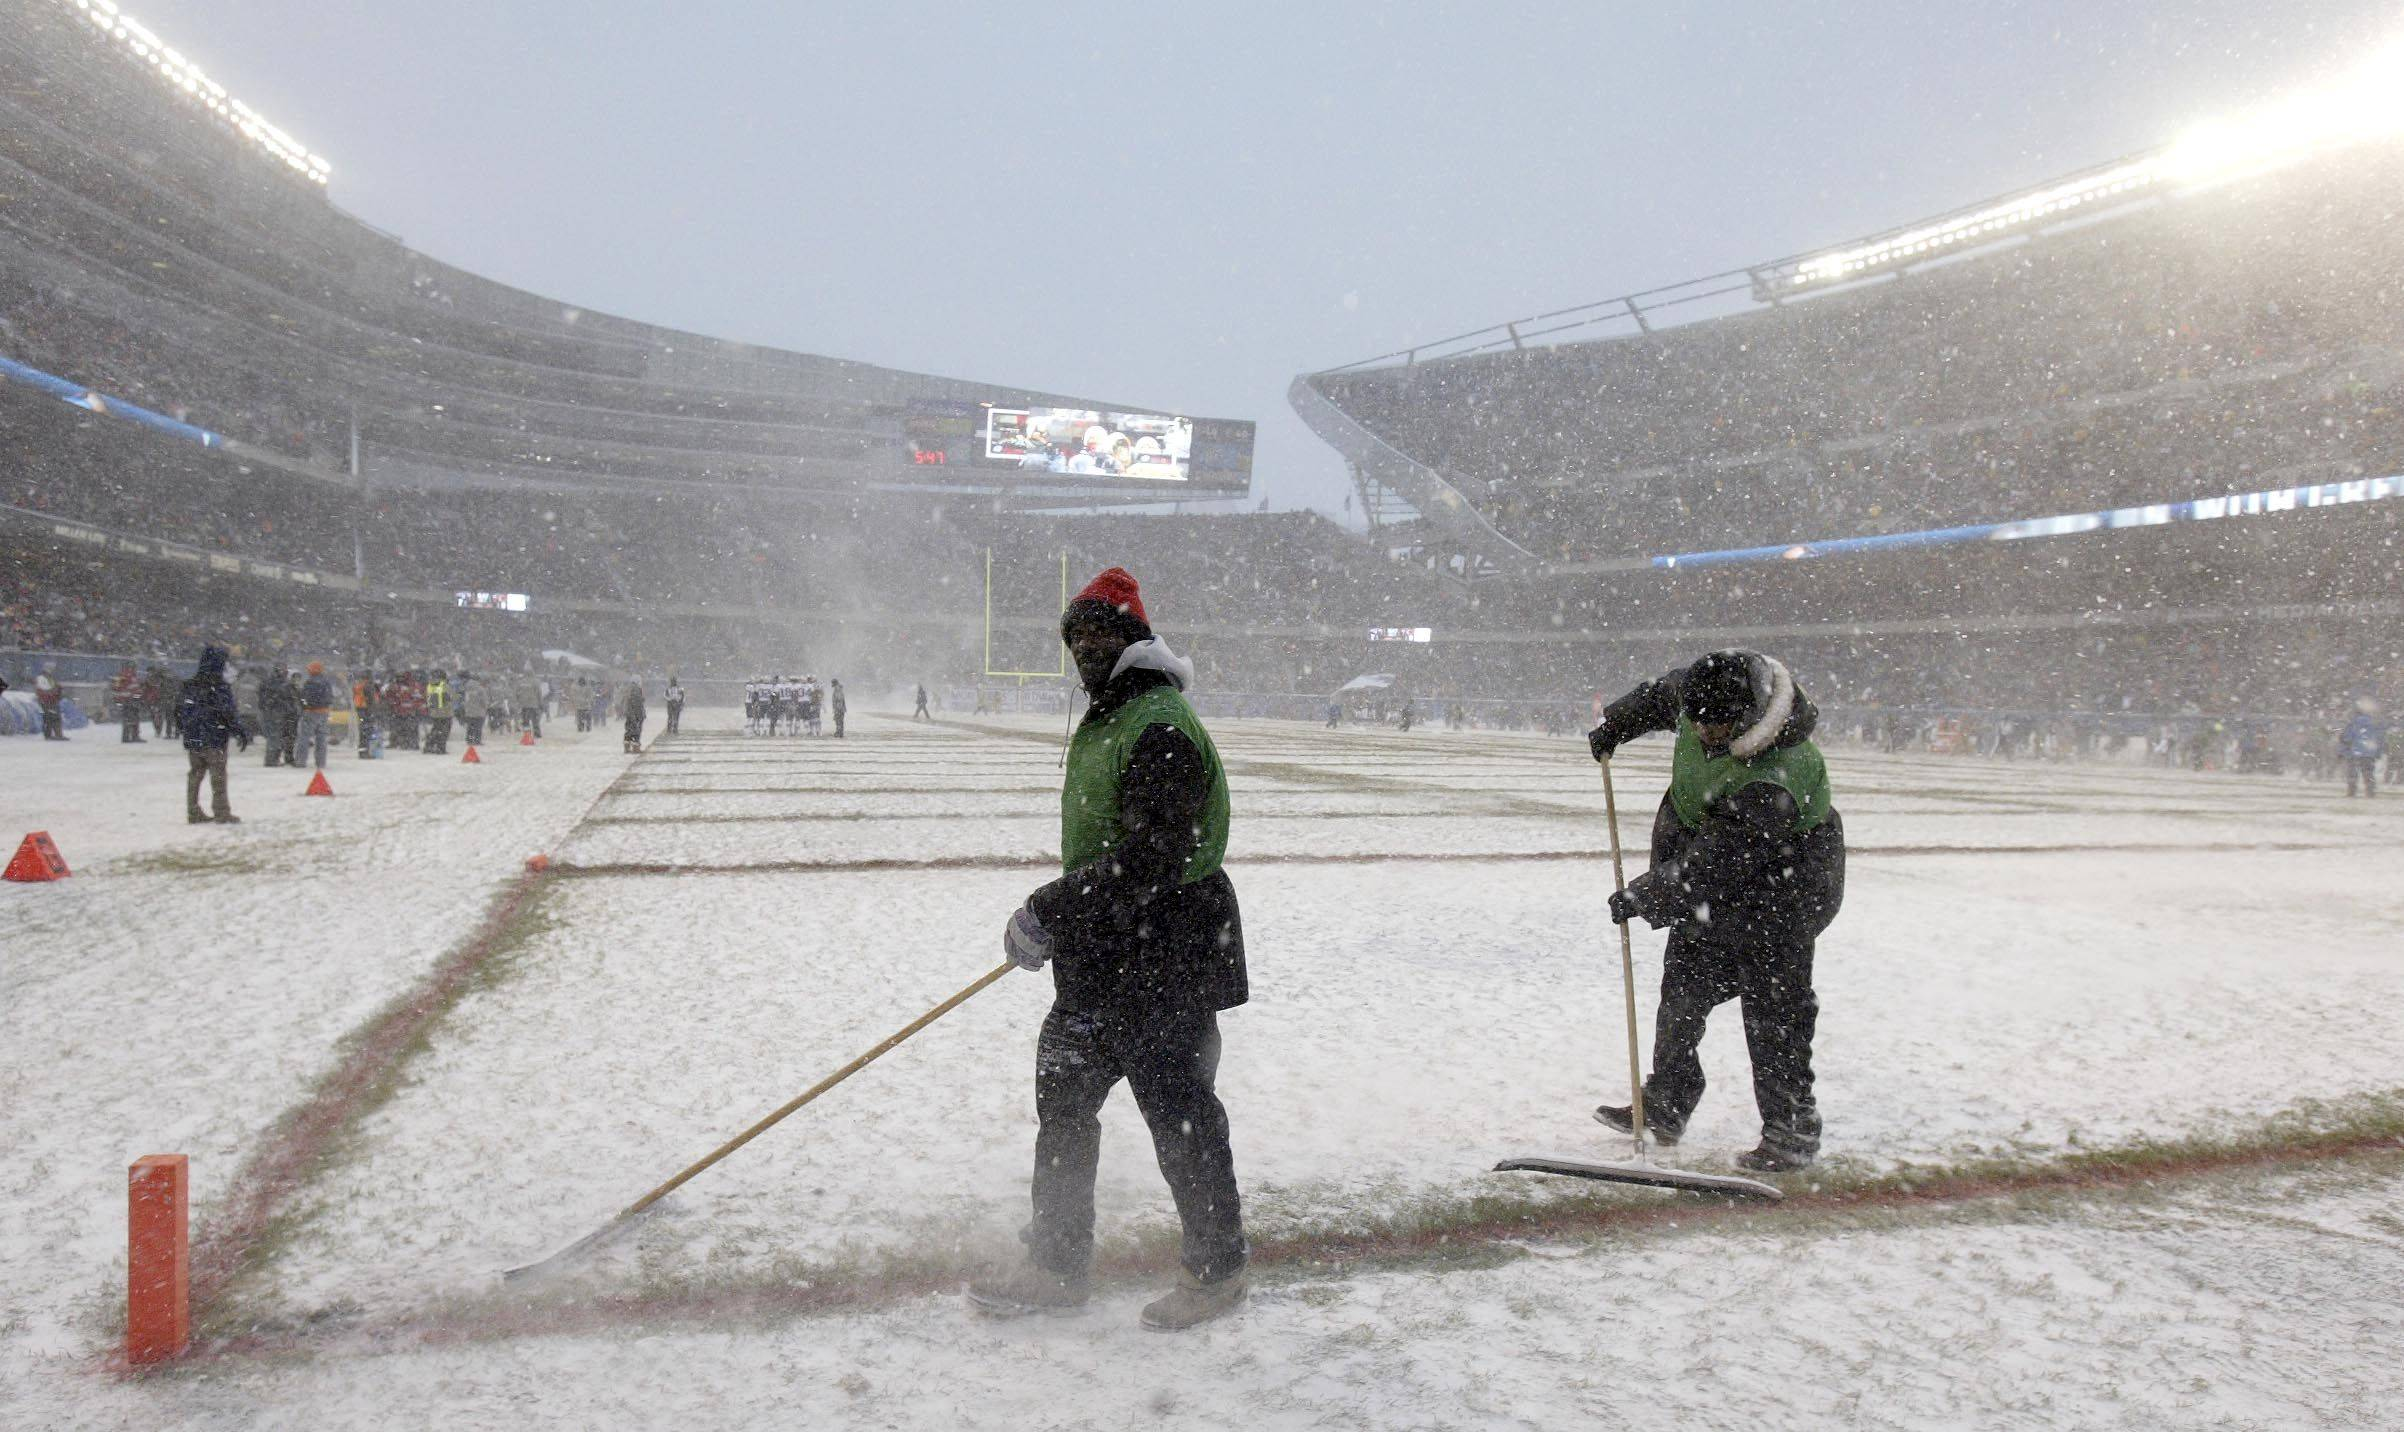 Ground crews clear the field at Soldier Field in Chicago before the game between the Chicago Bears and the New England Patriots.